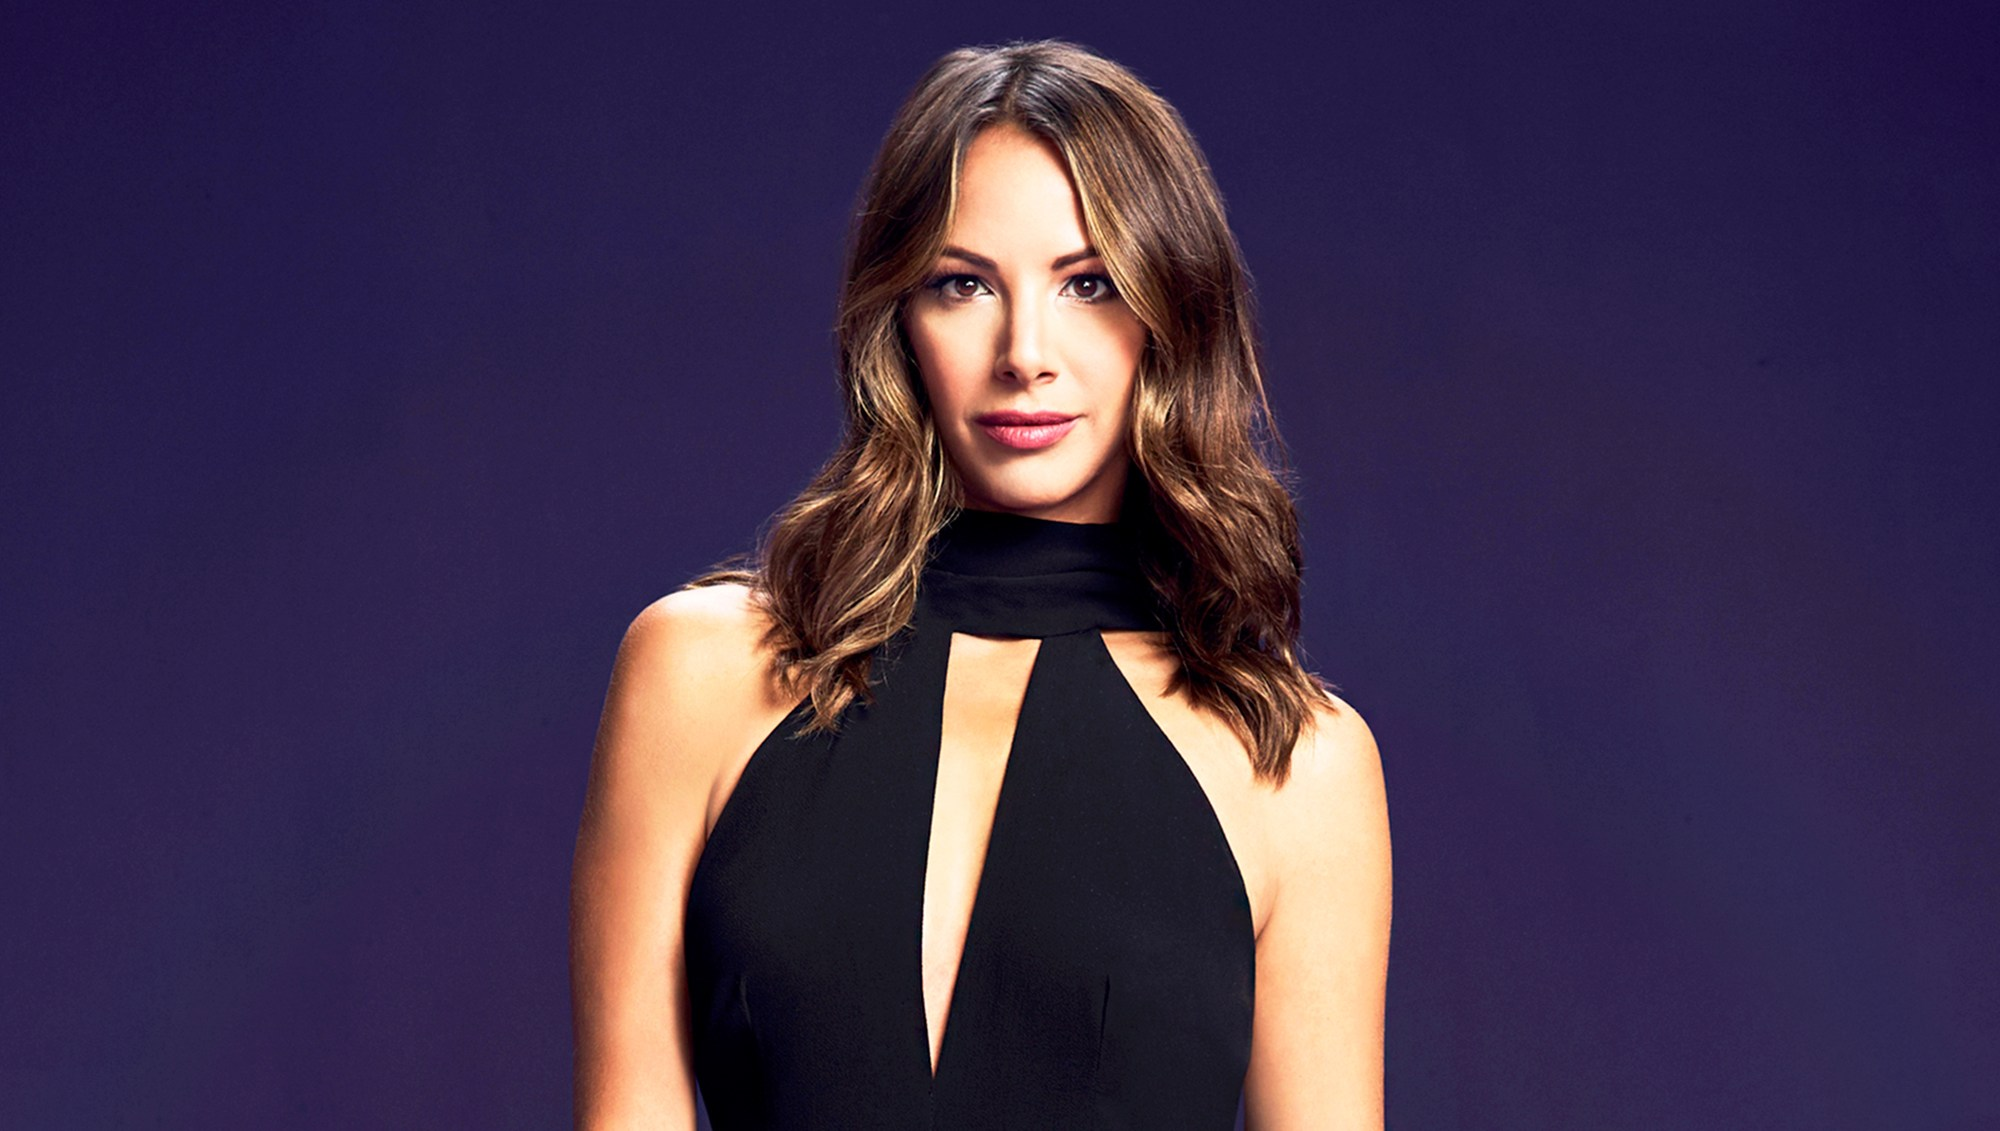 'Vanderpump Rules' star Kristen Doute